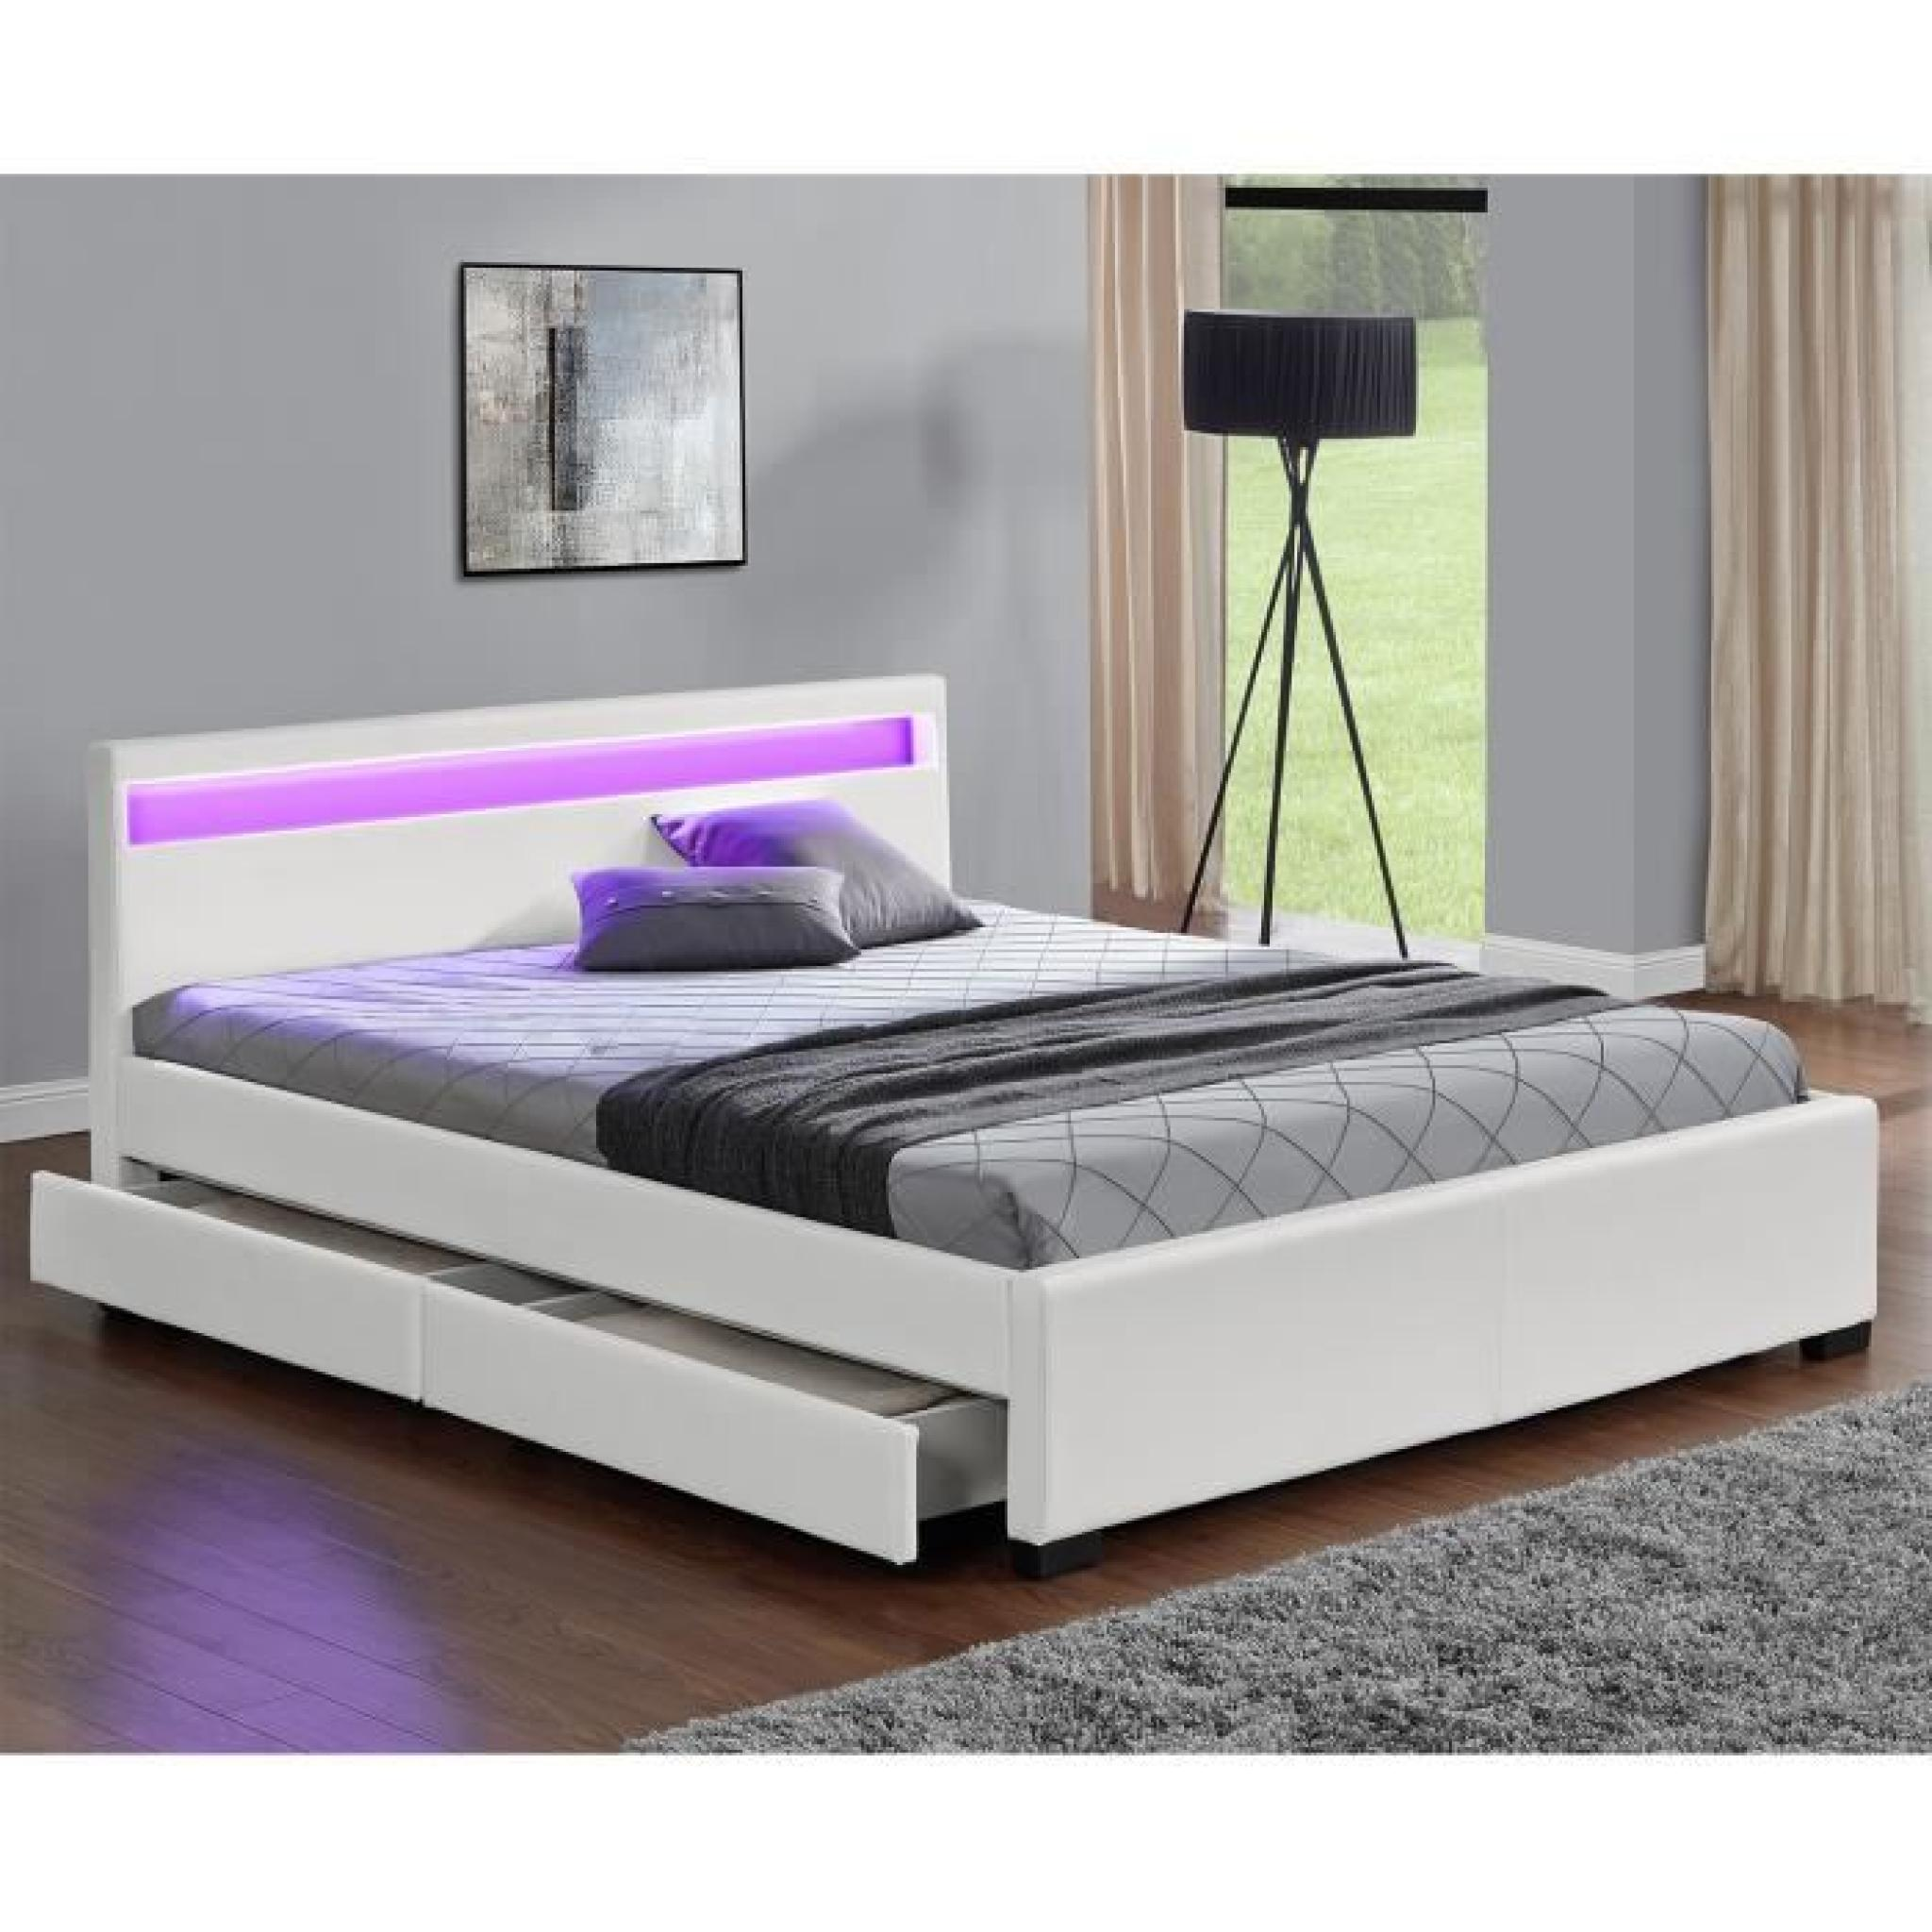 lit enfield blanc led et rangement tiroirs 160x200 cm achat vente lit pas cher couleur. Black Bedroom Furniture Sets. Home Design Ideas